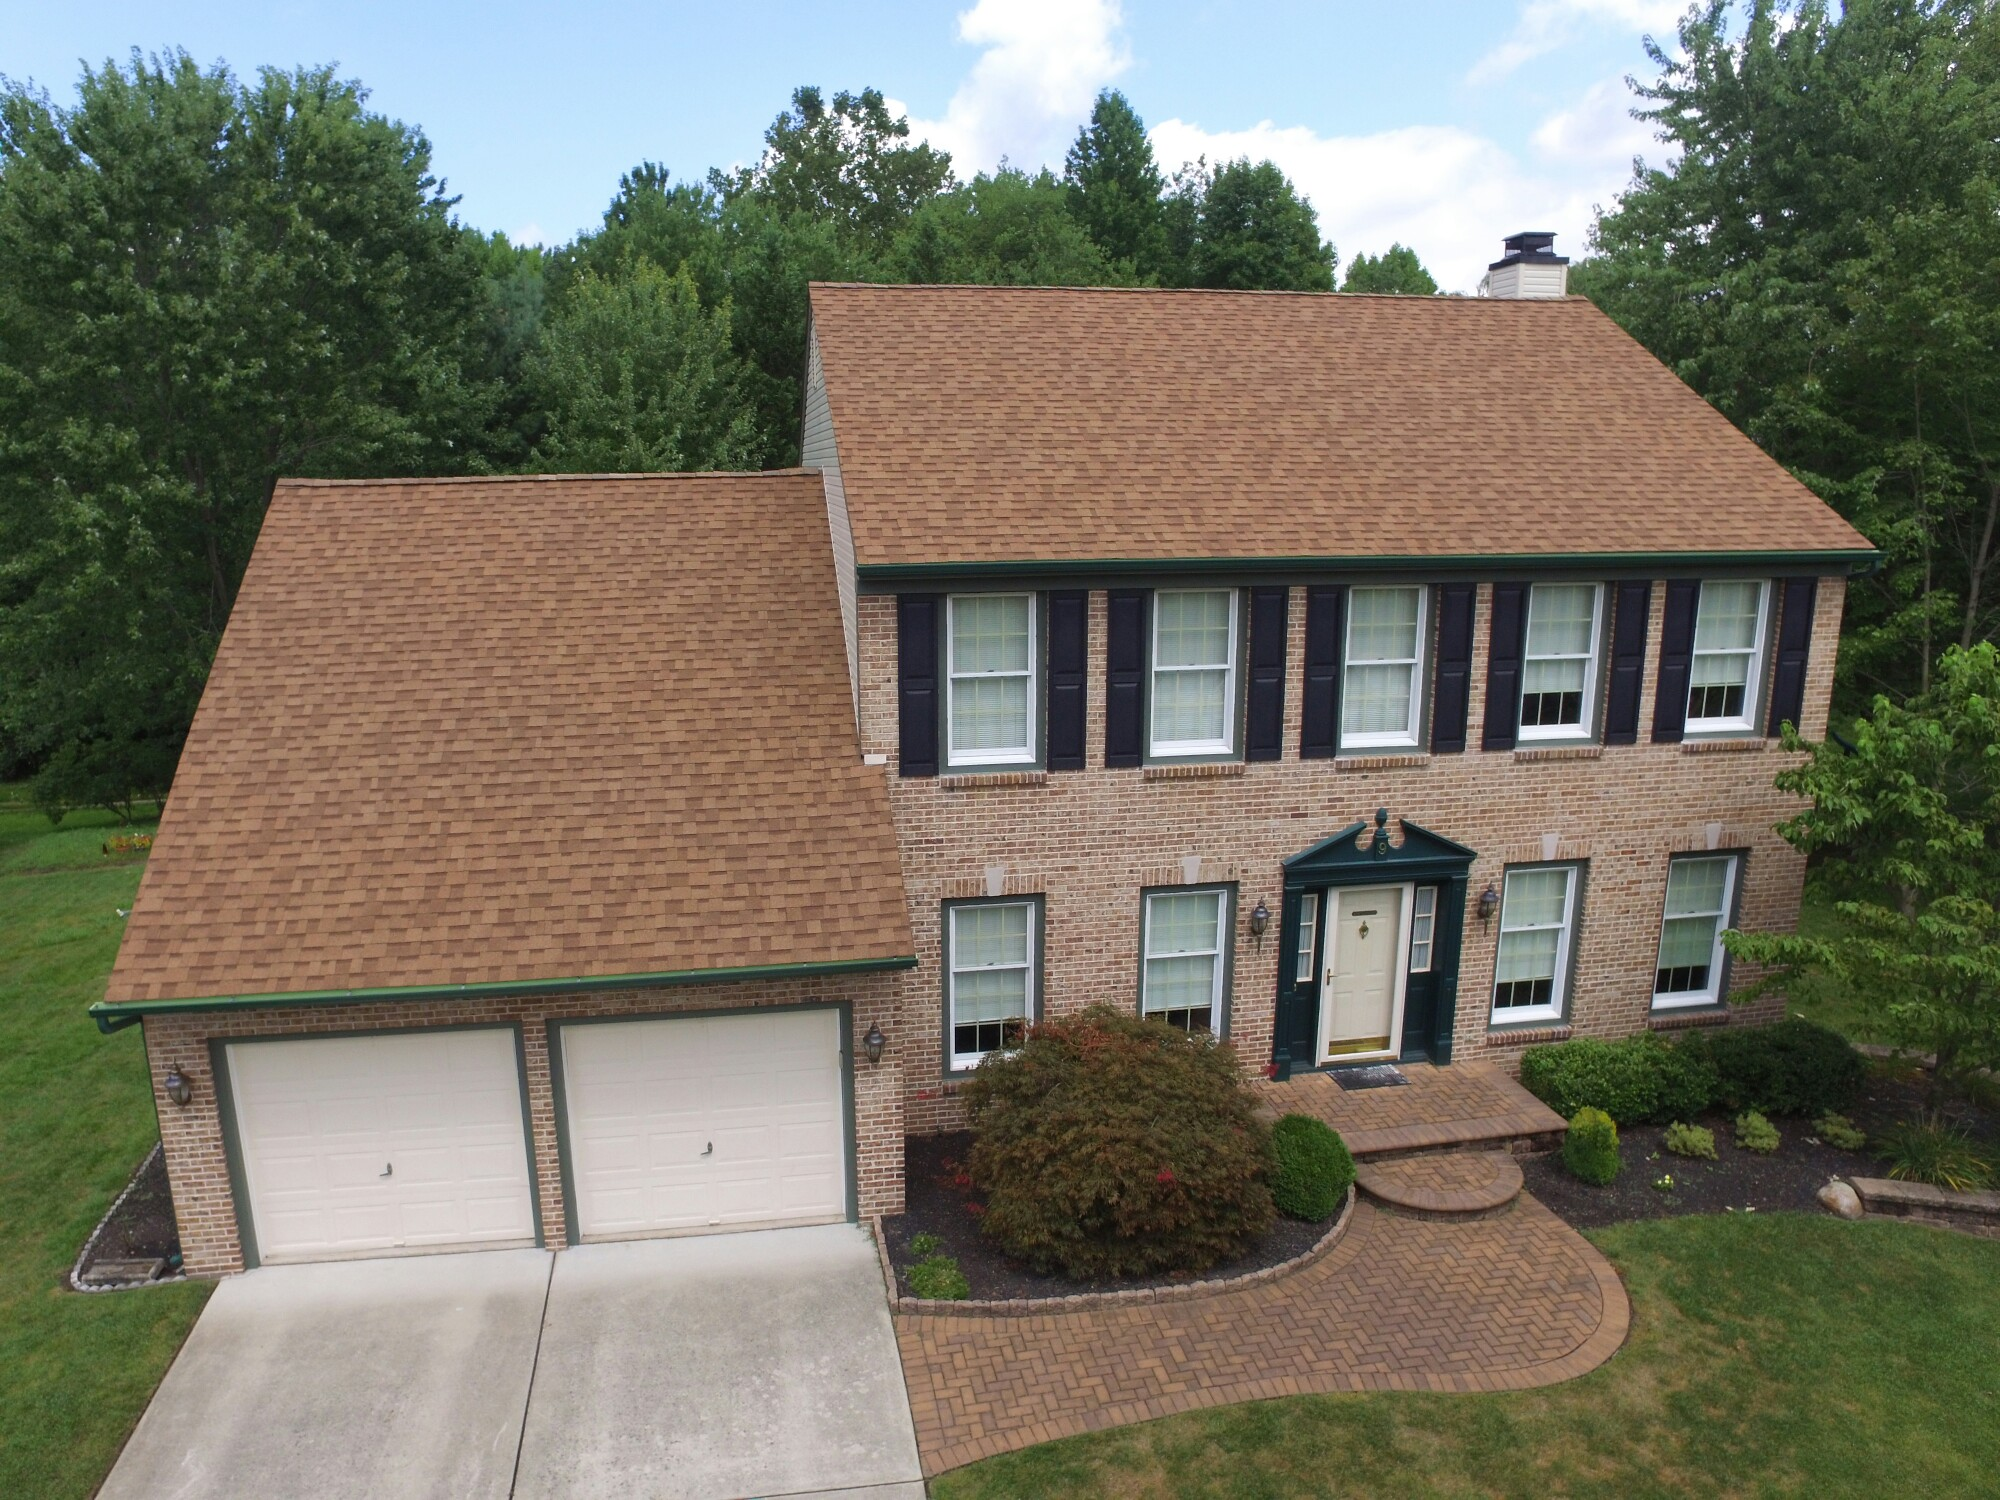 Owens Corning Roofing System With Desert Tan Shingles